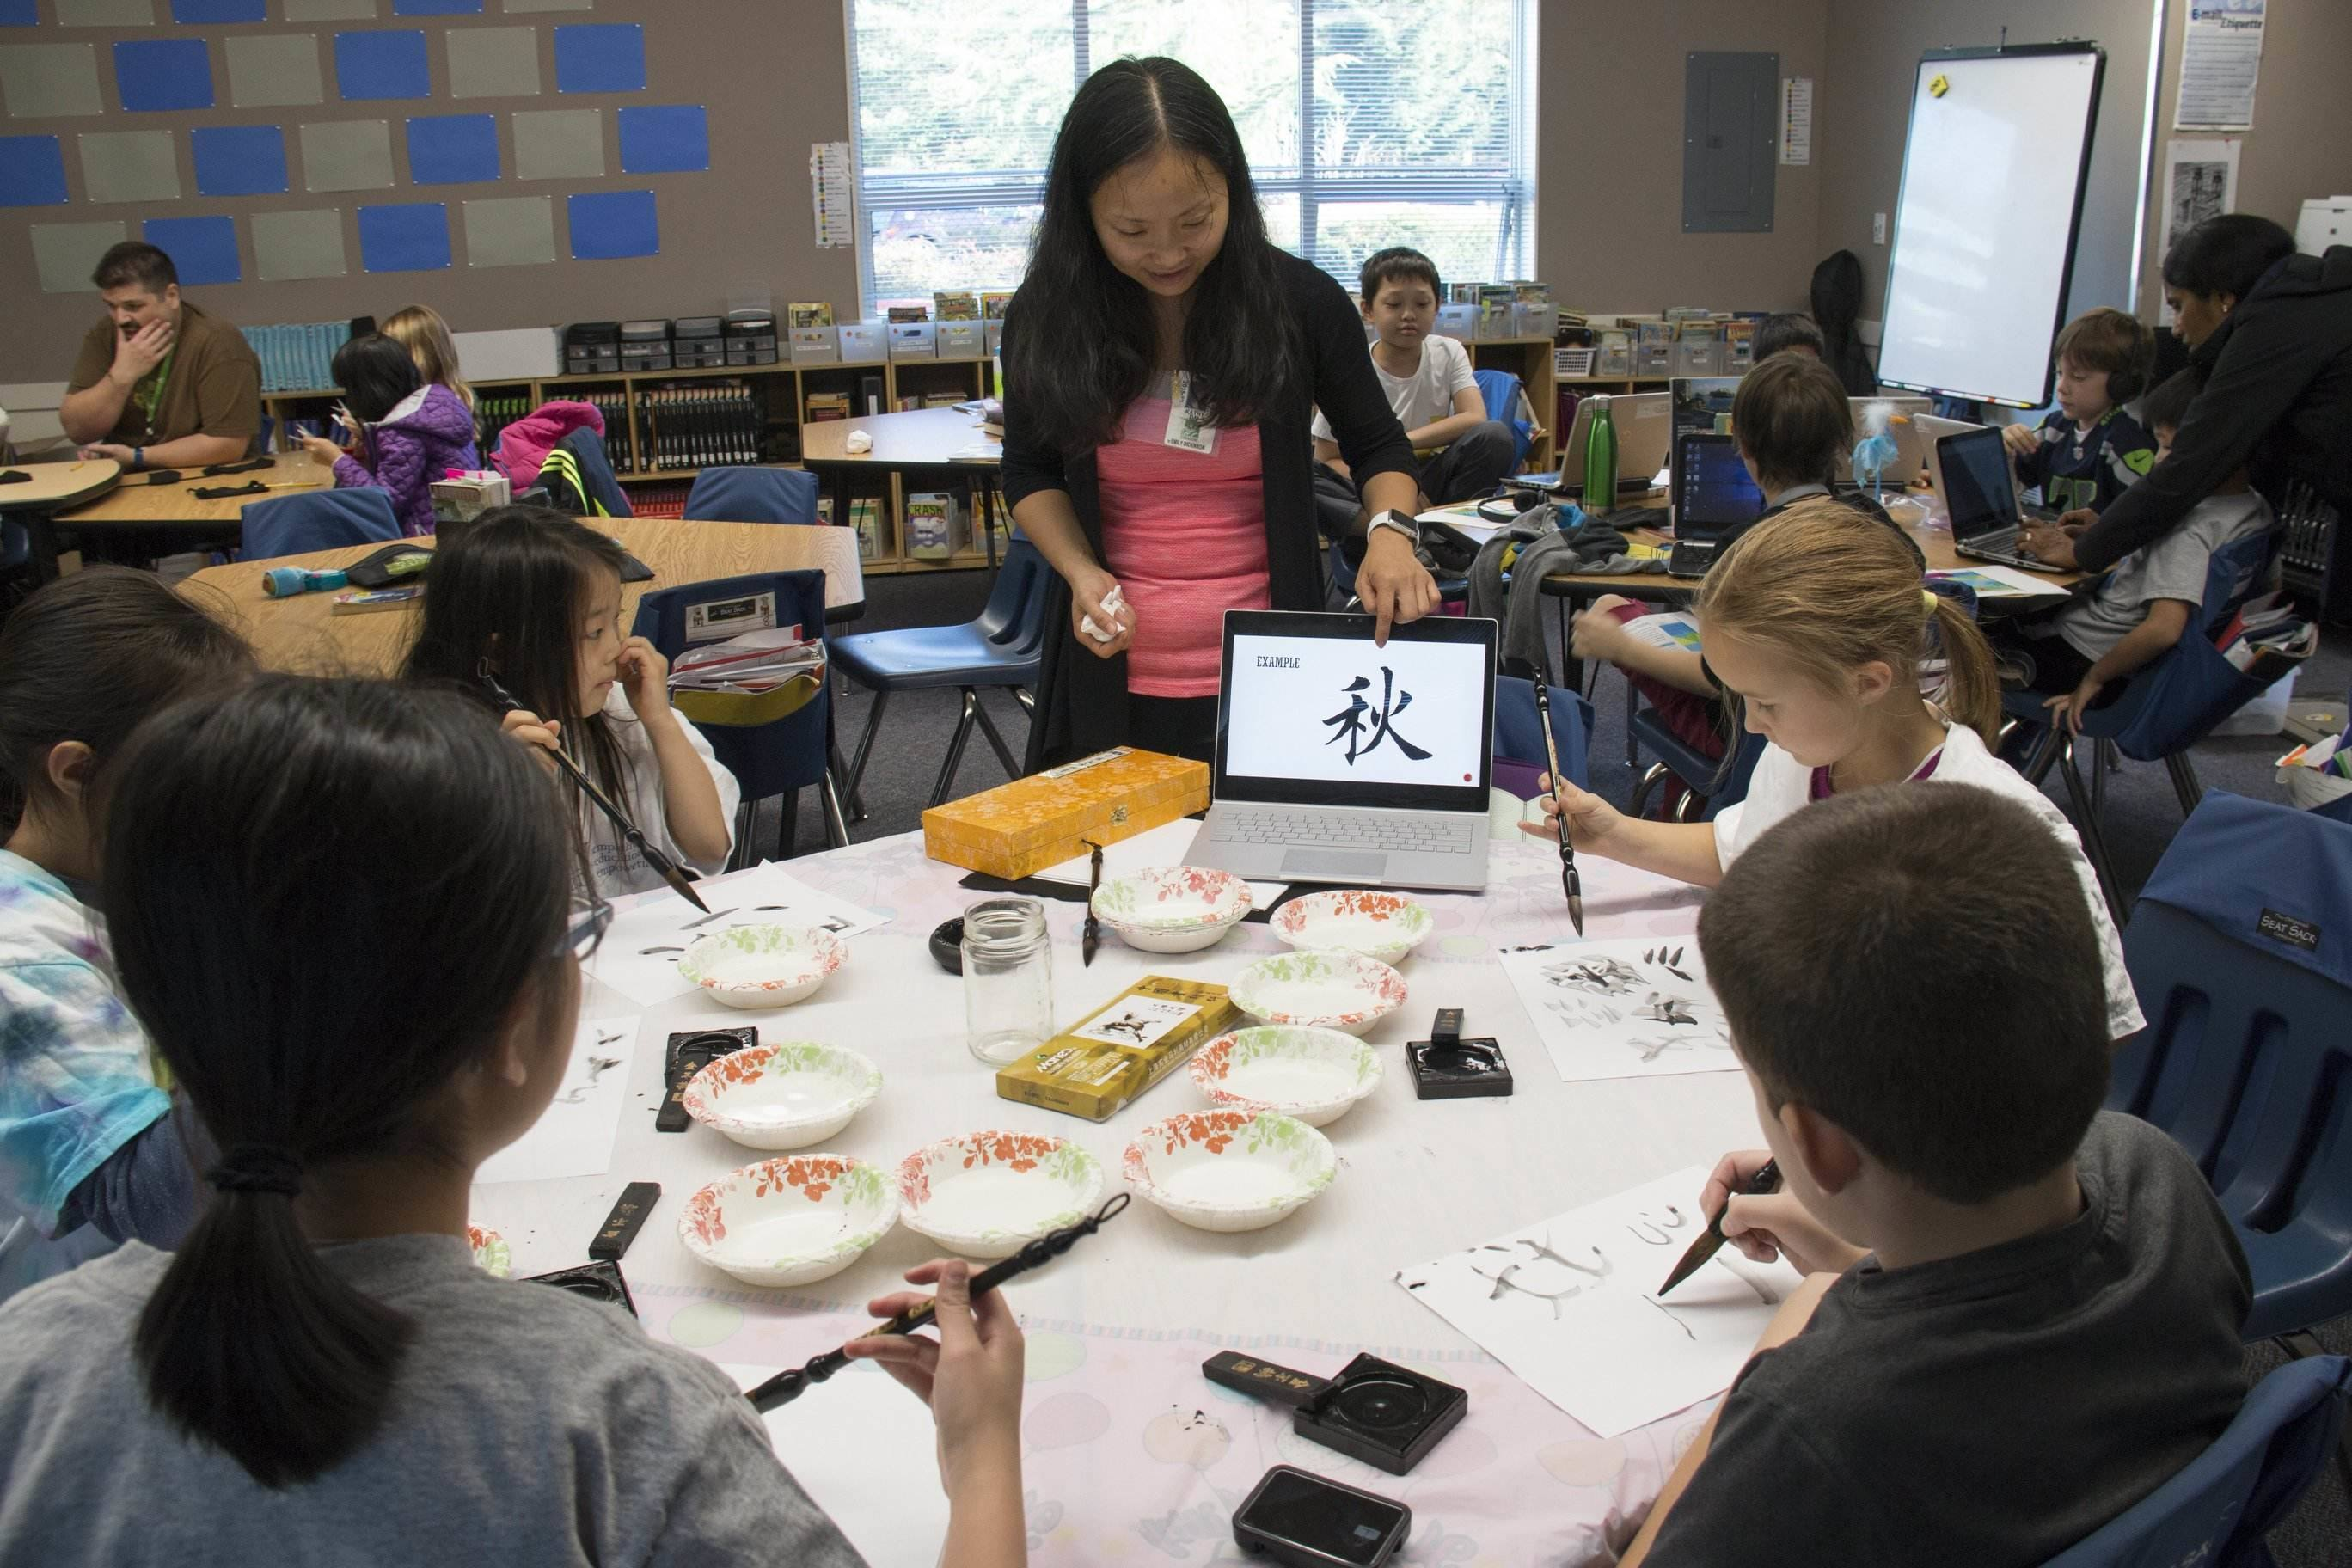 Students learning to write in a different language